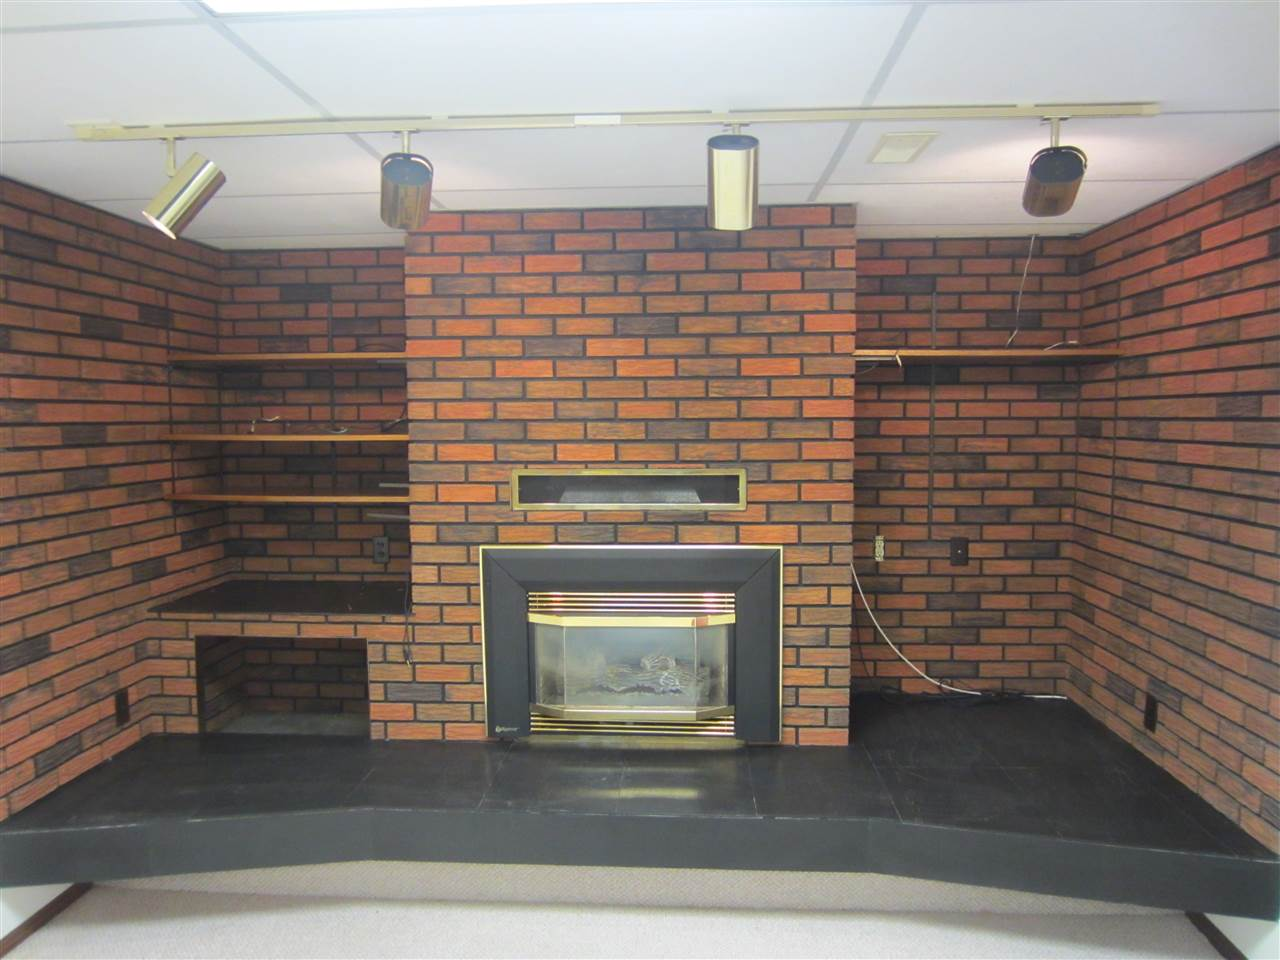 Gas fireplace in basement